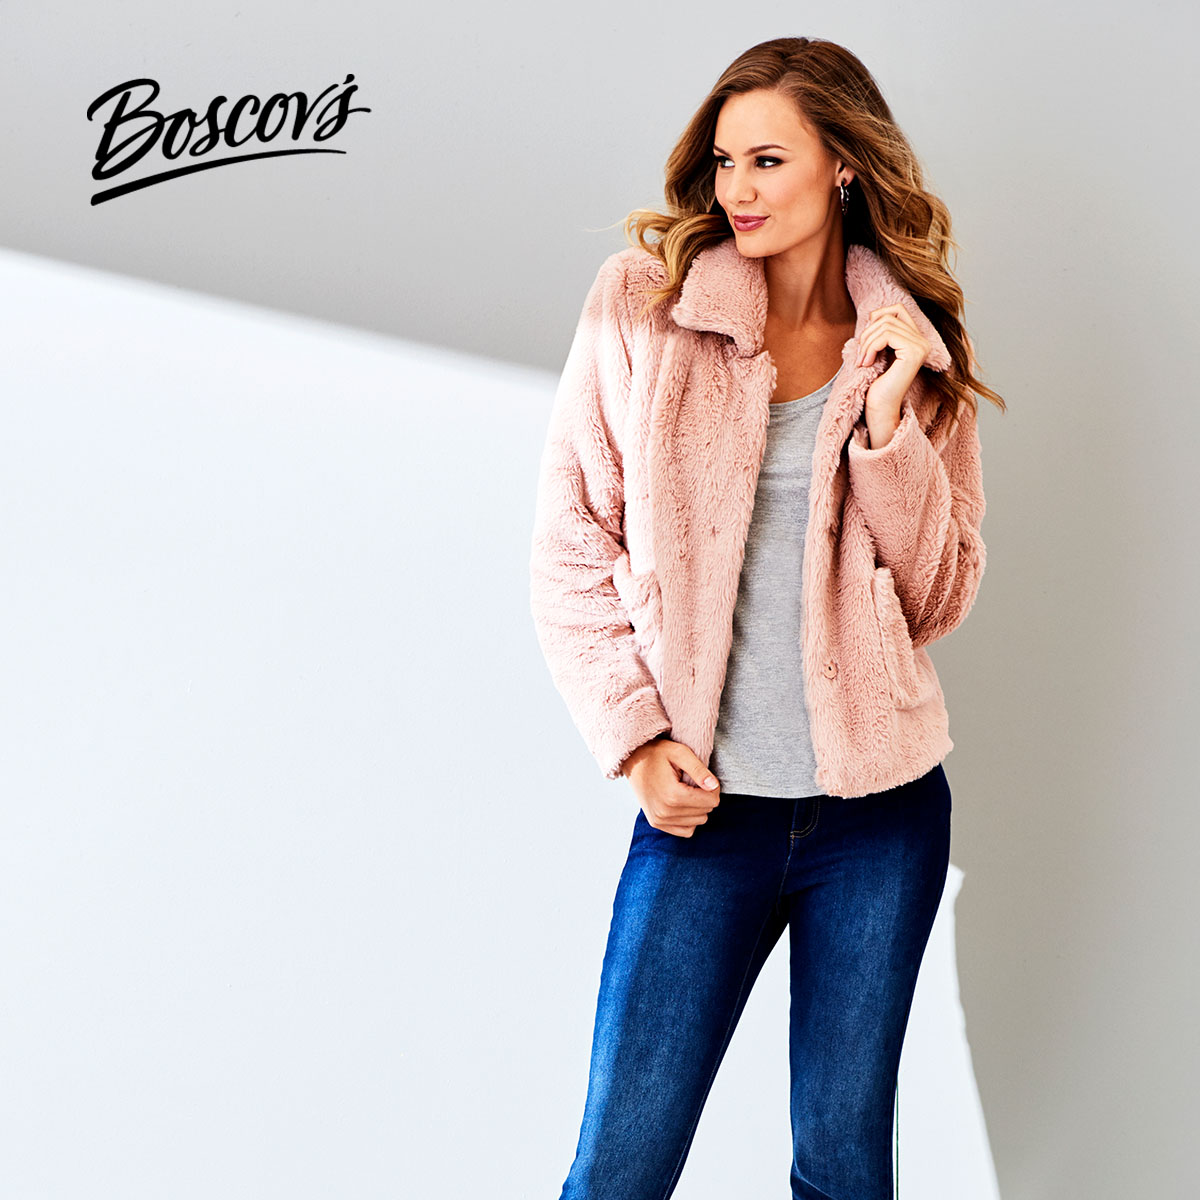 Photo of a young woman wearing a pink fuzzy jacket and jeans